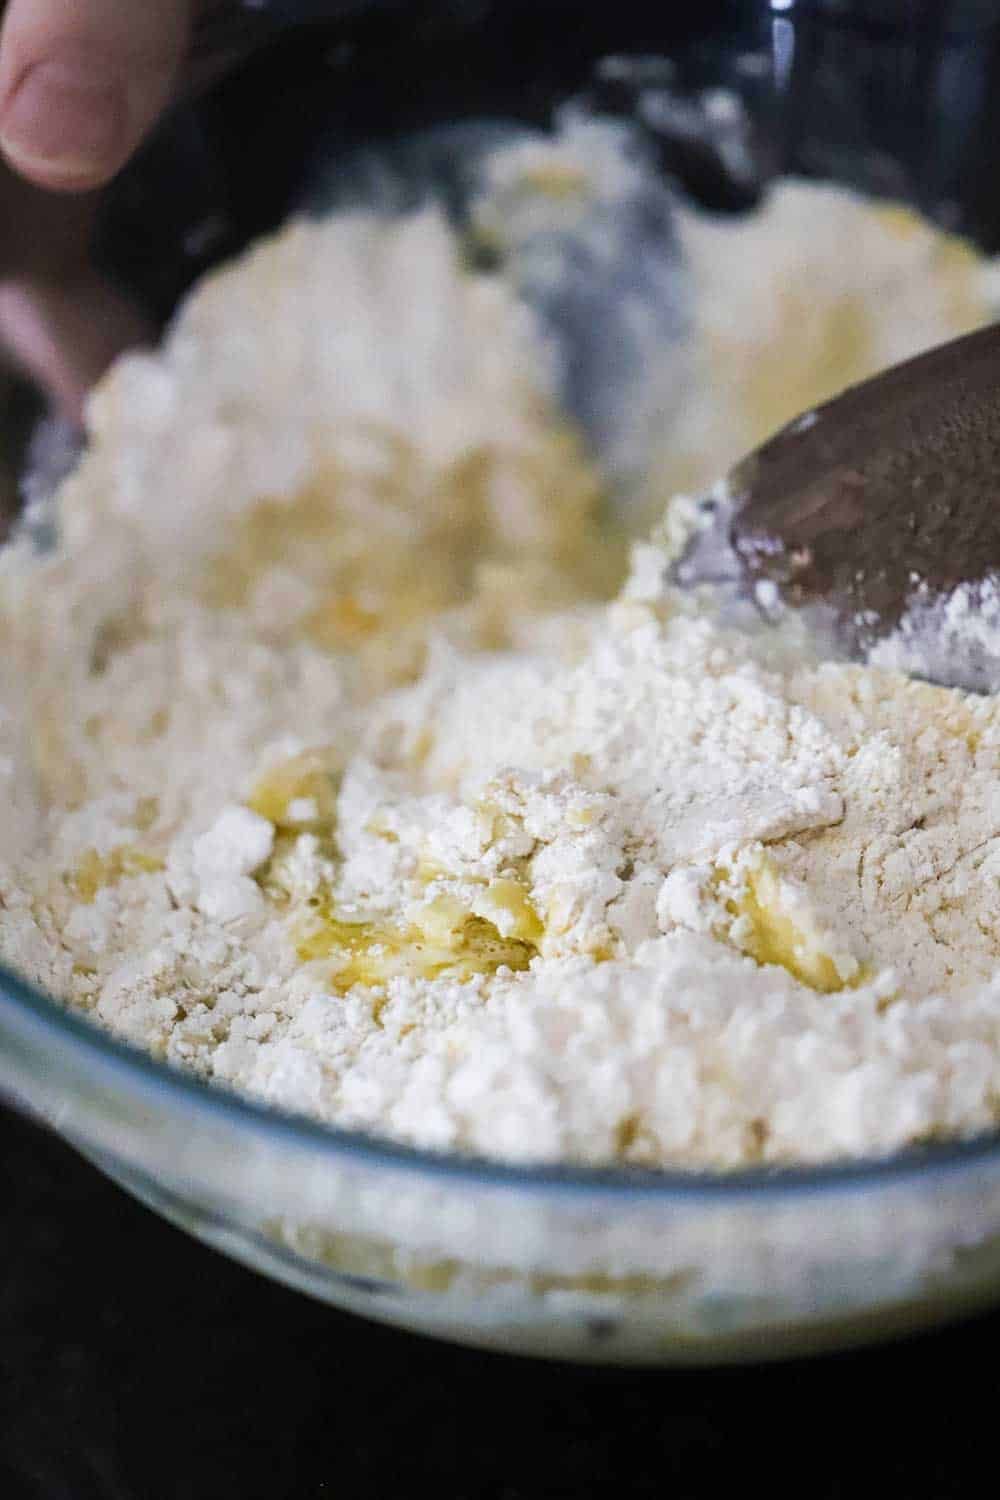 A glass bowl filled with flour, water, yeast, and cornmeal all being mixed together by a wooden spoon.